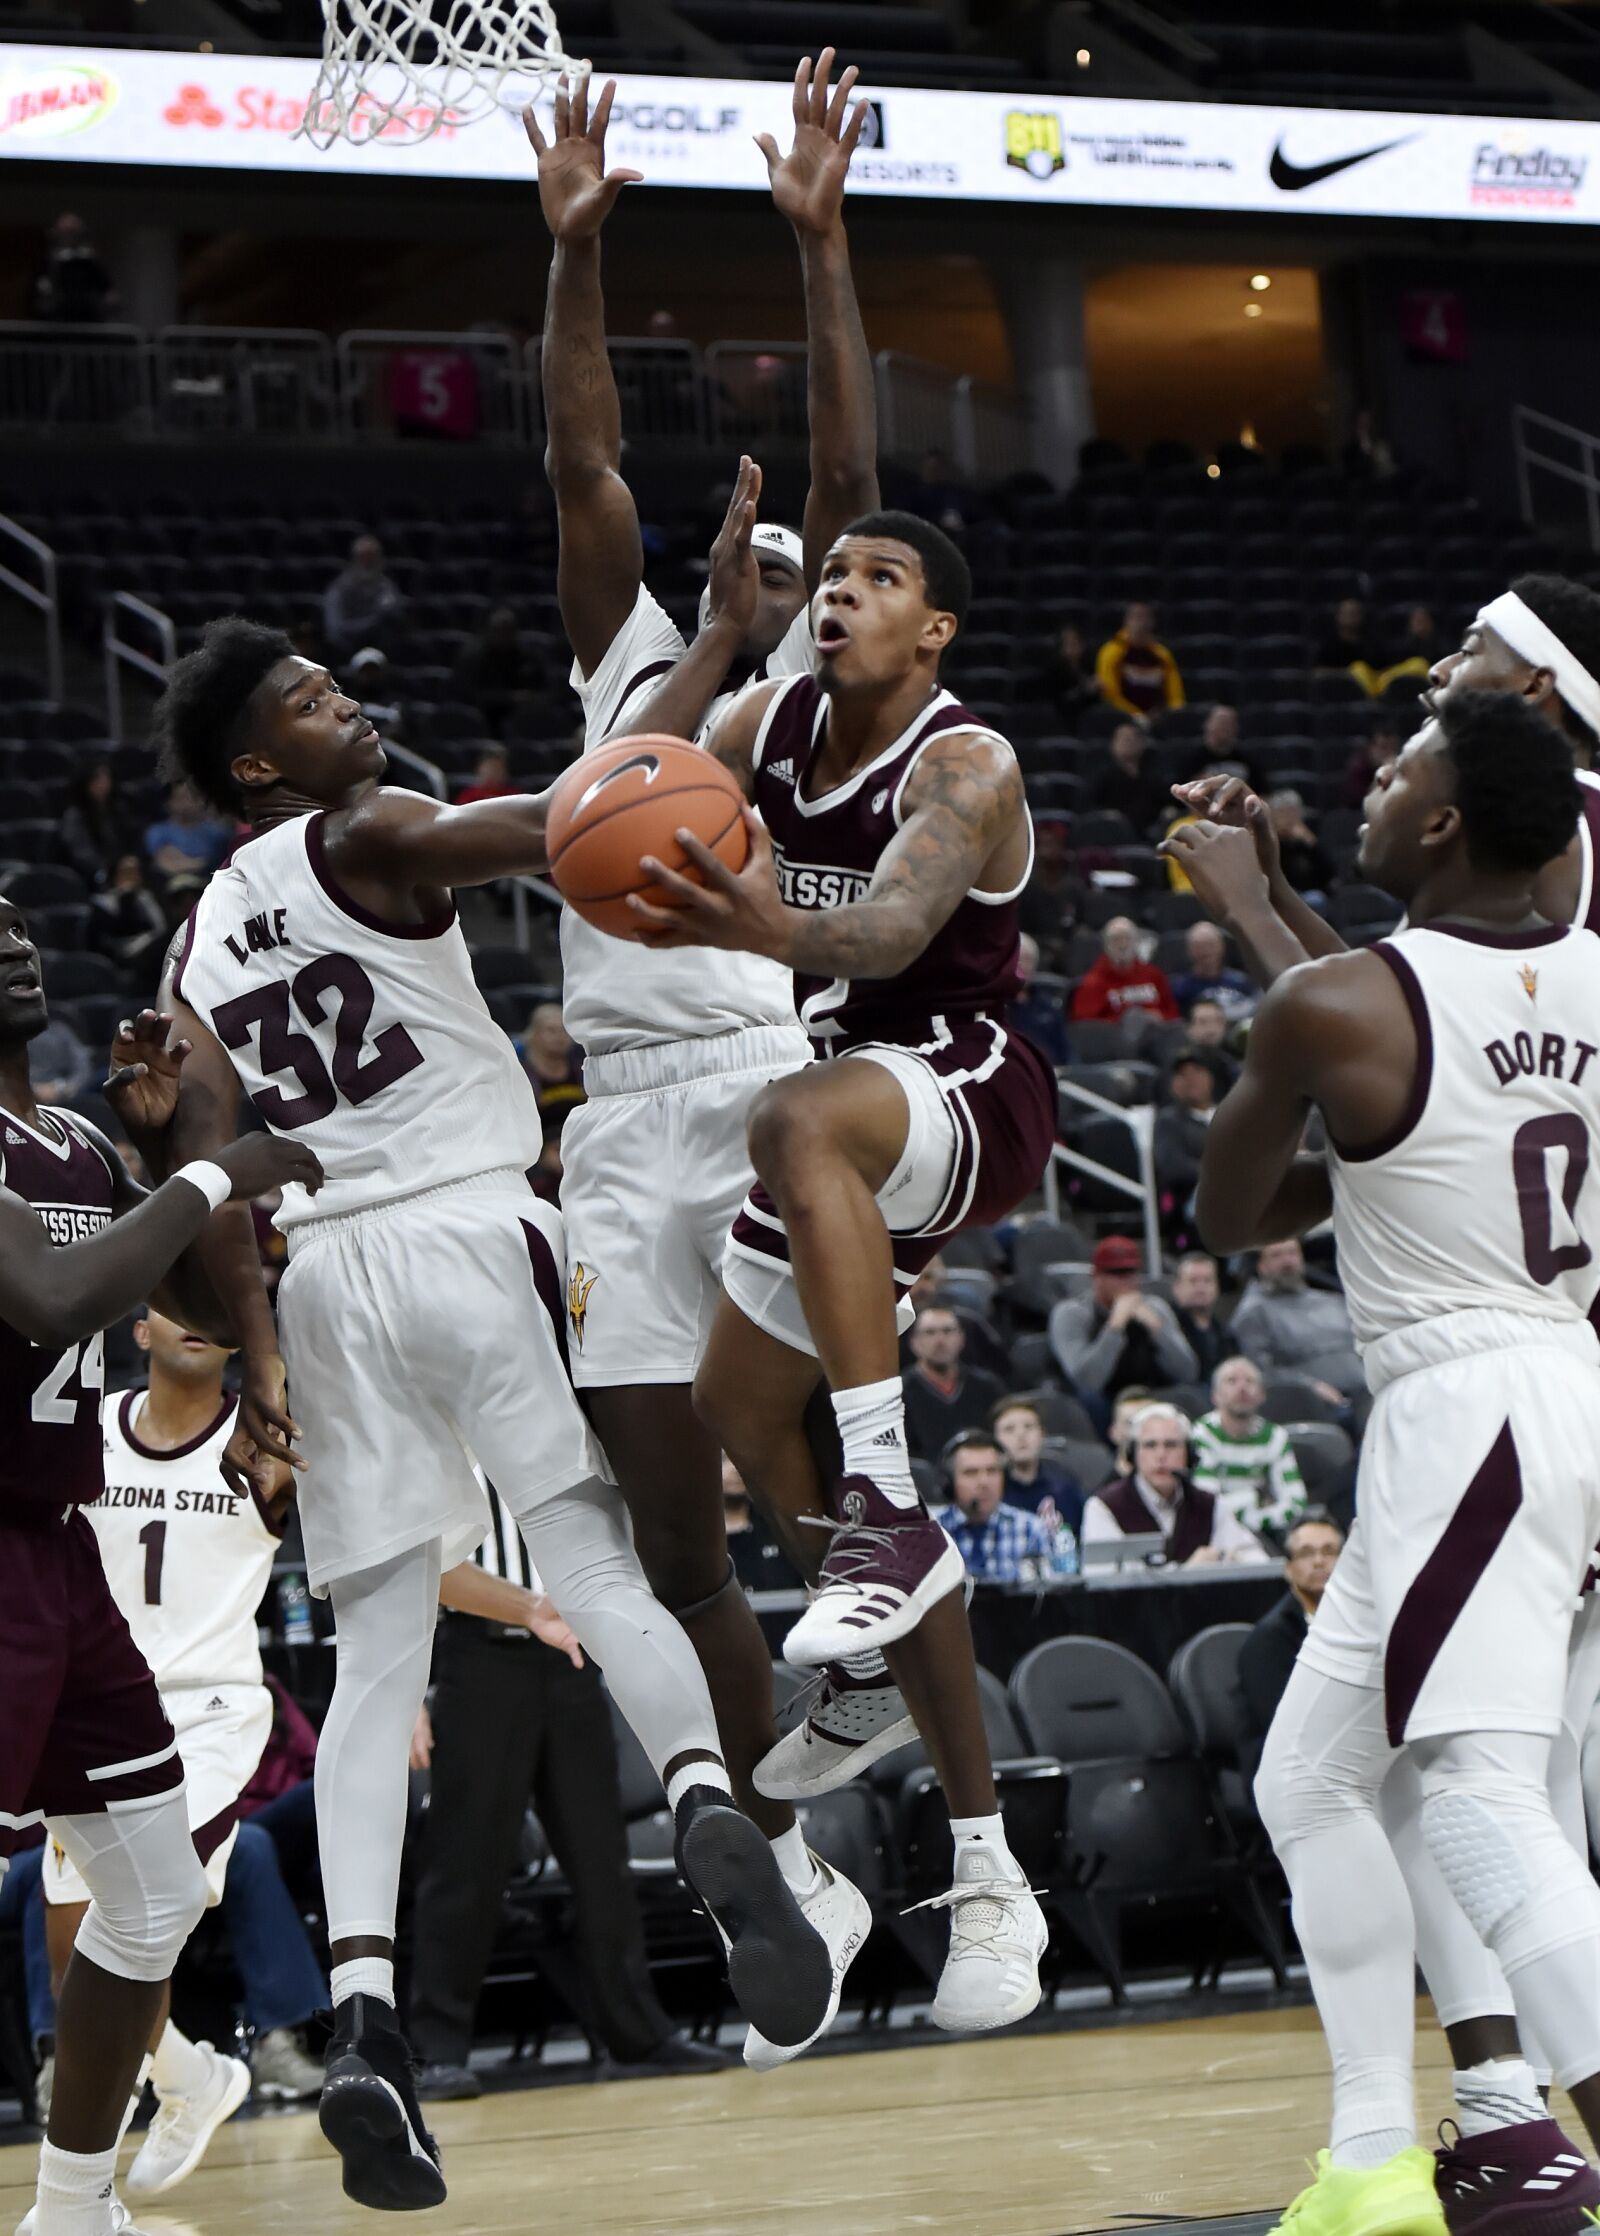 Mississippi State basketball guard Lamar Peters named Co-SEC Player of the Week